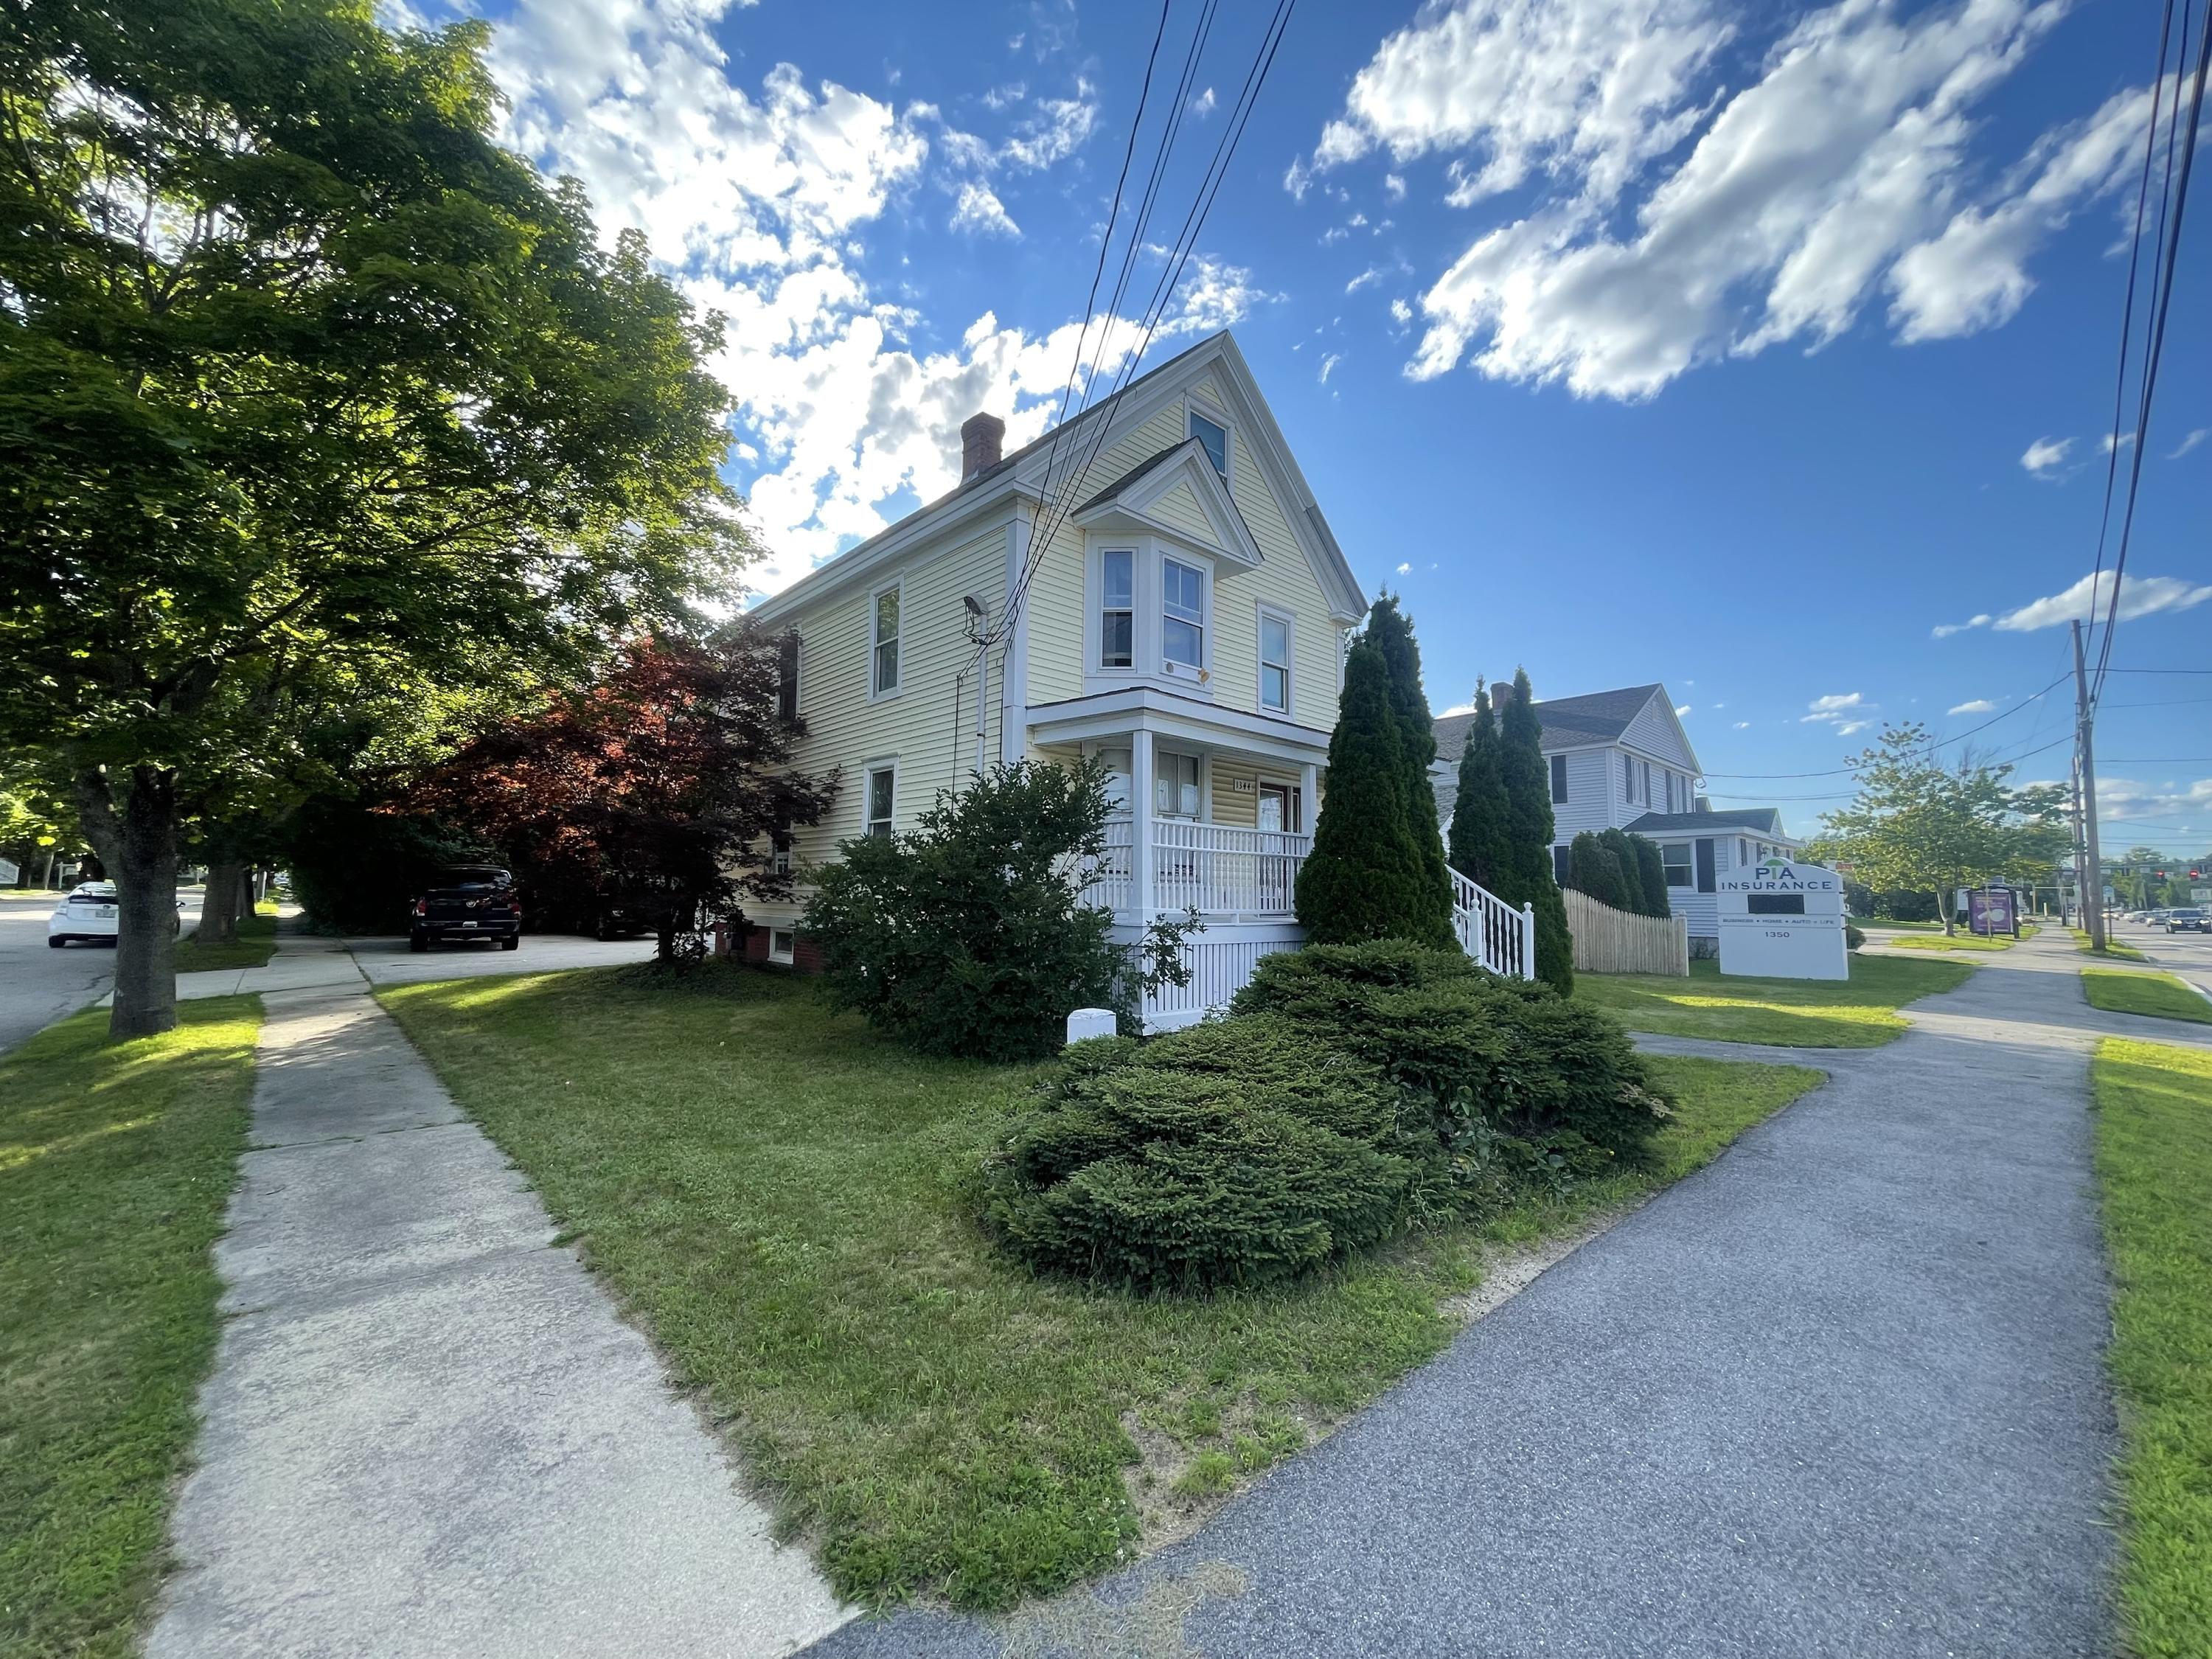 Main image for MLS listing 1502955